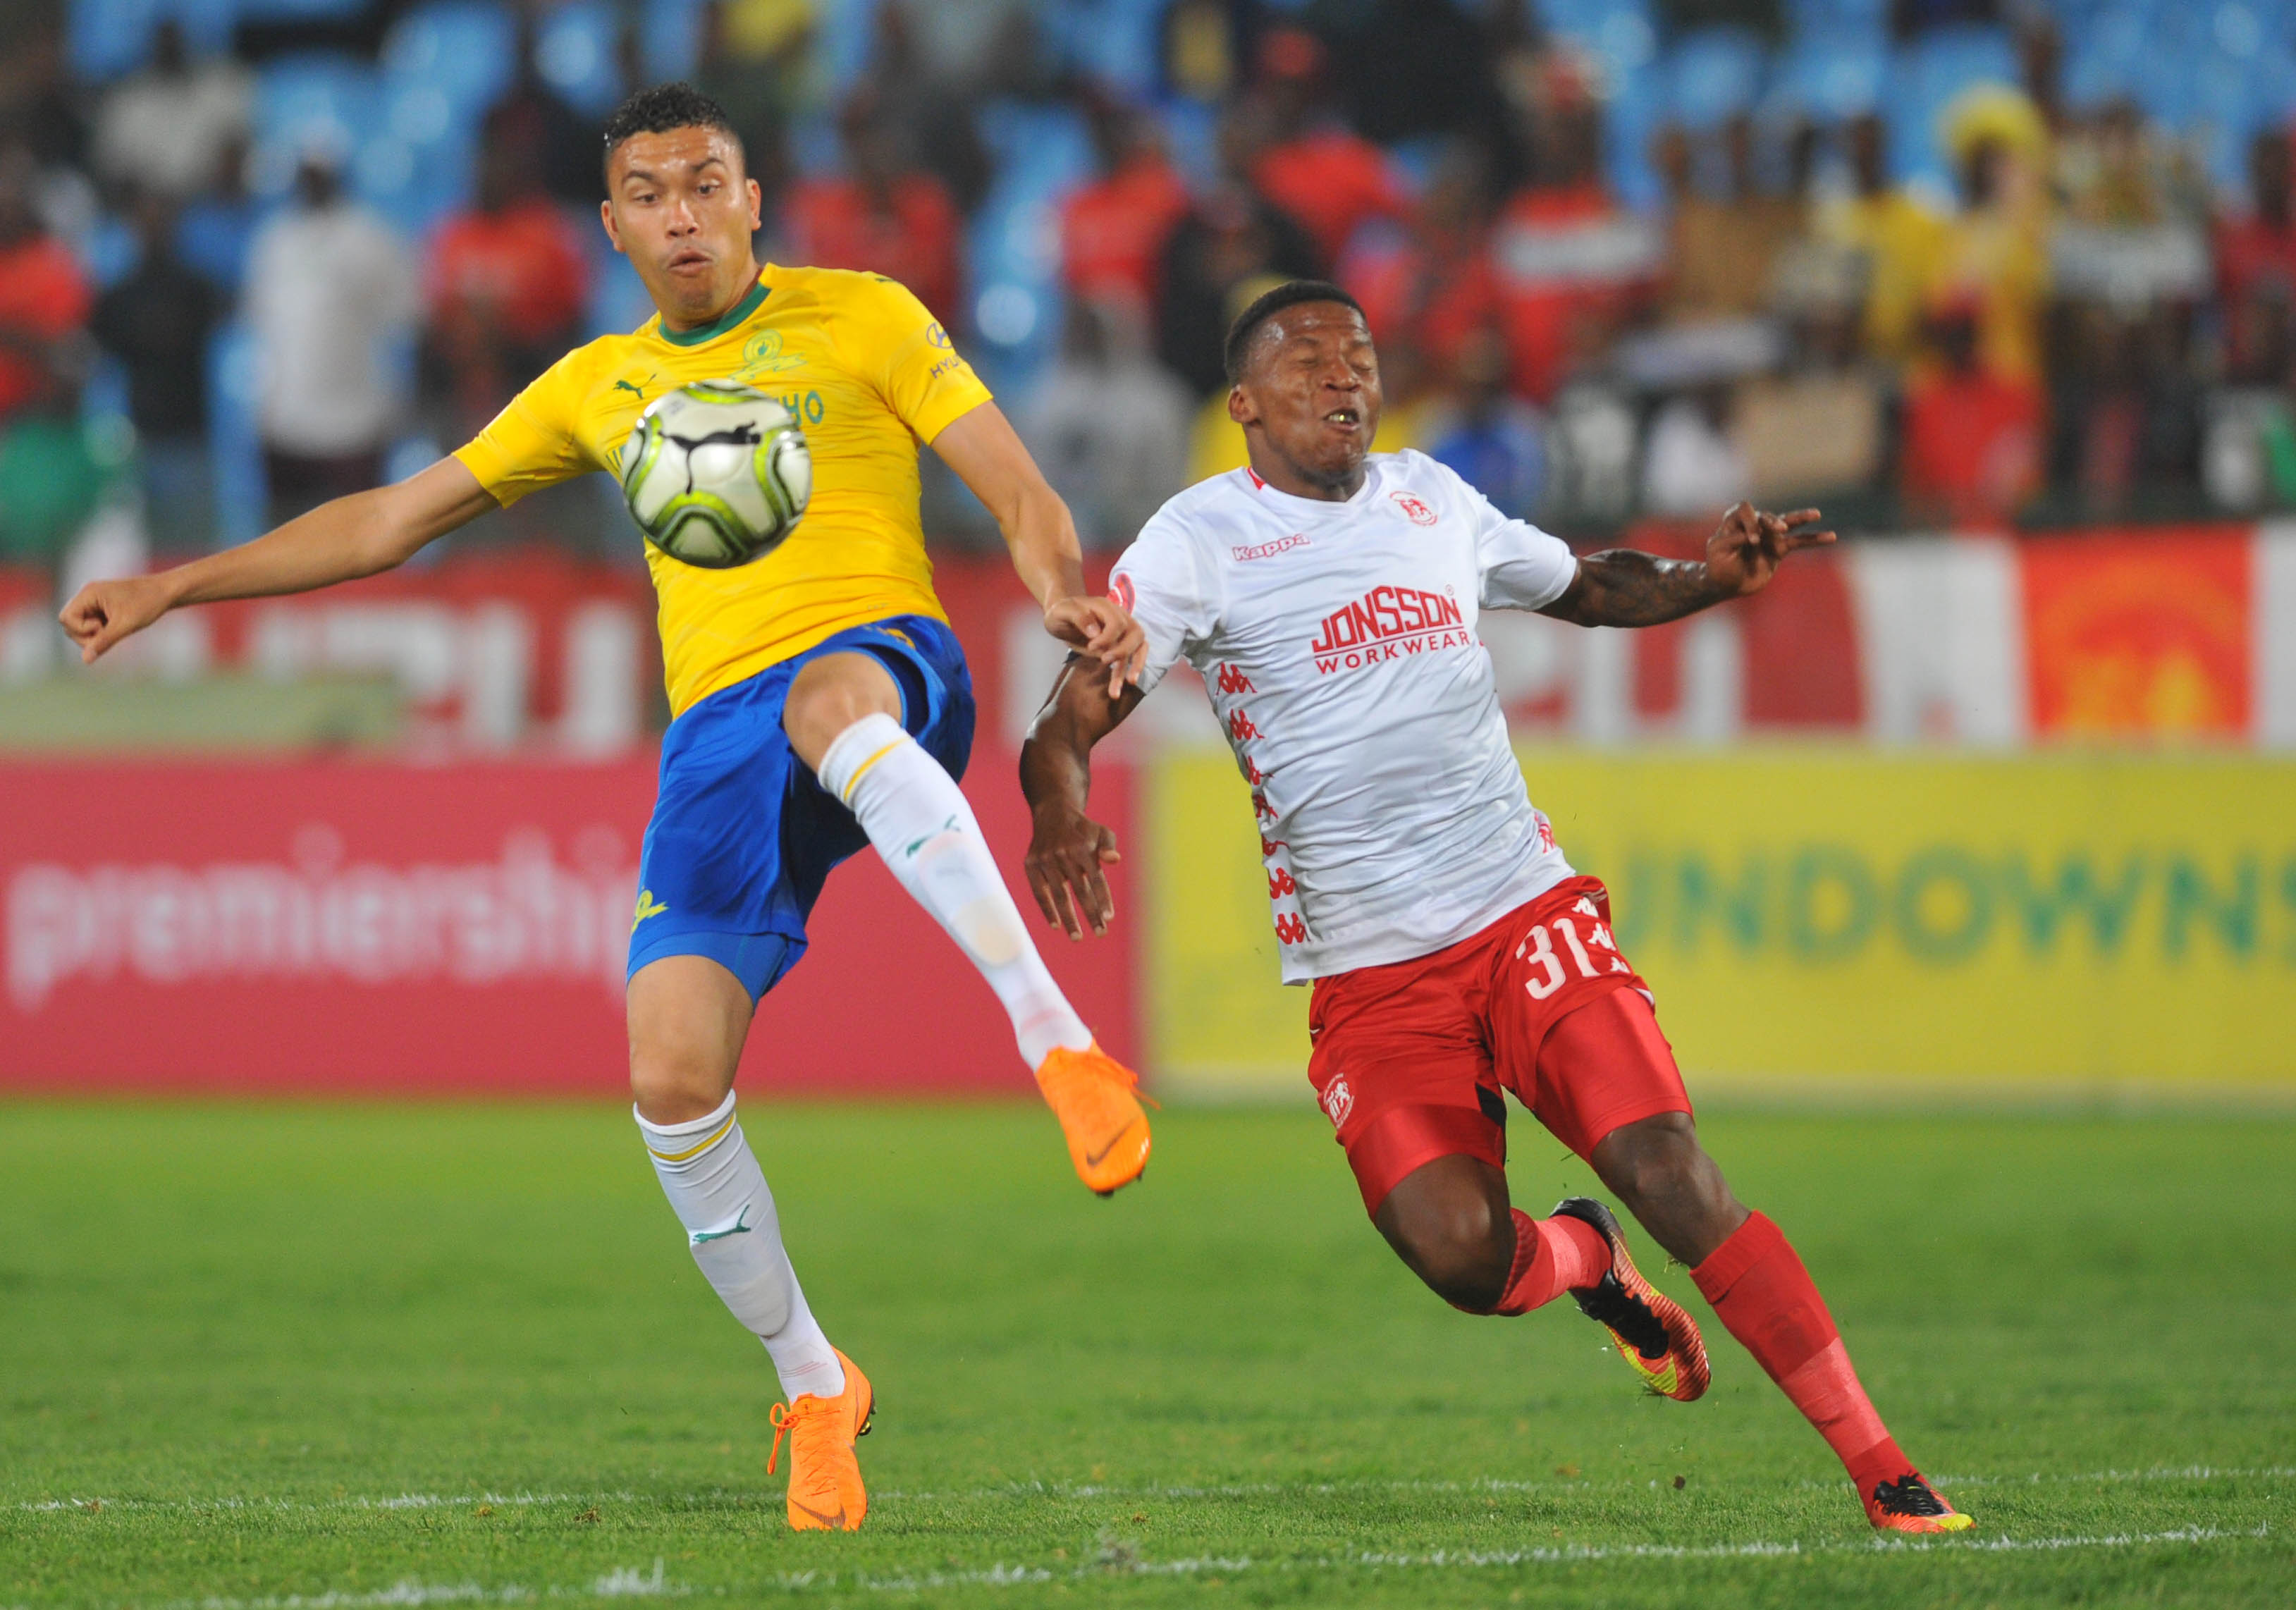 Ricardo Nascimento is challenged by Sabelo Nyembe